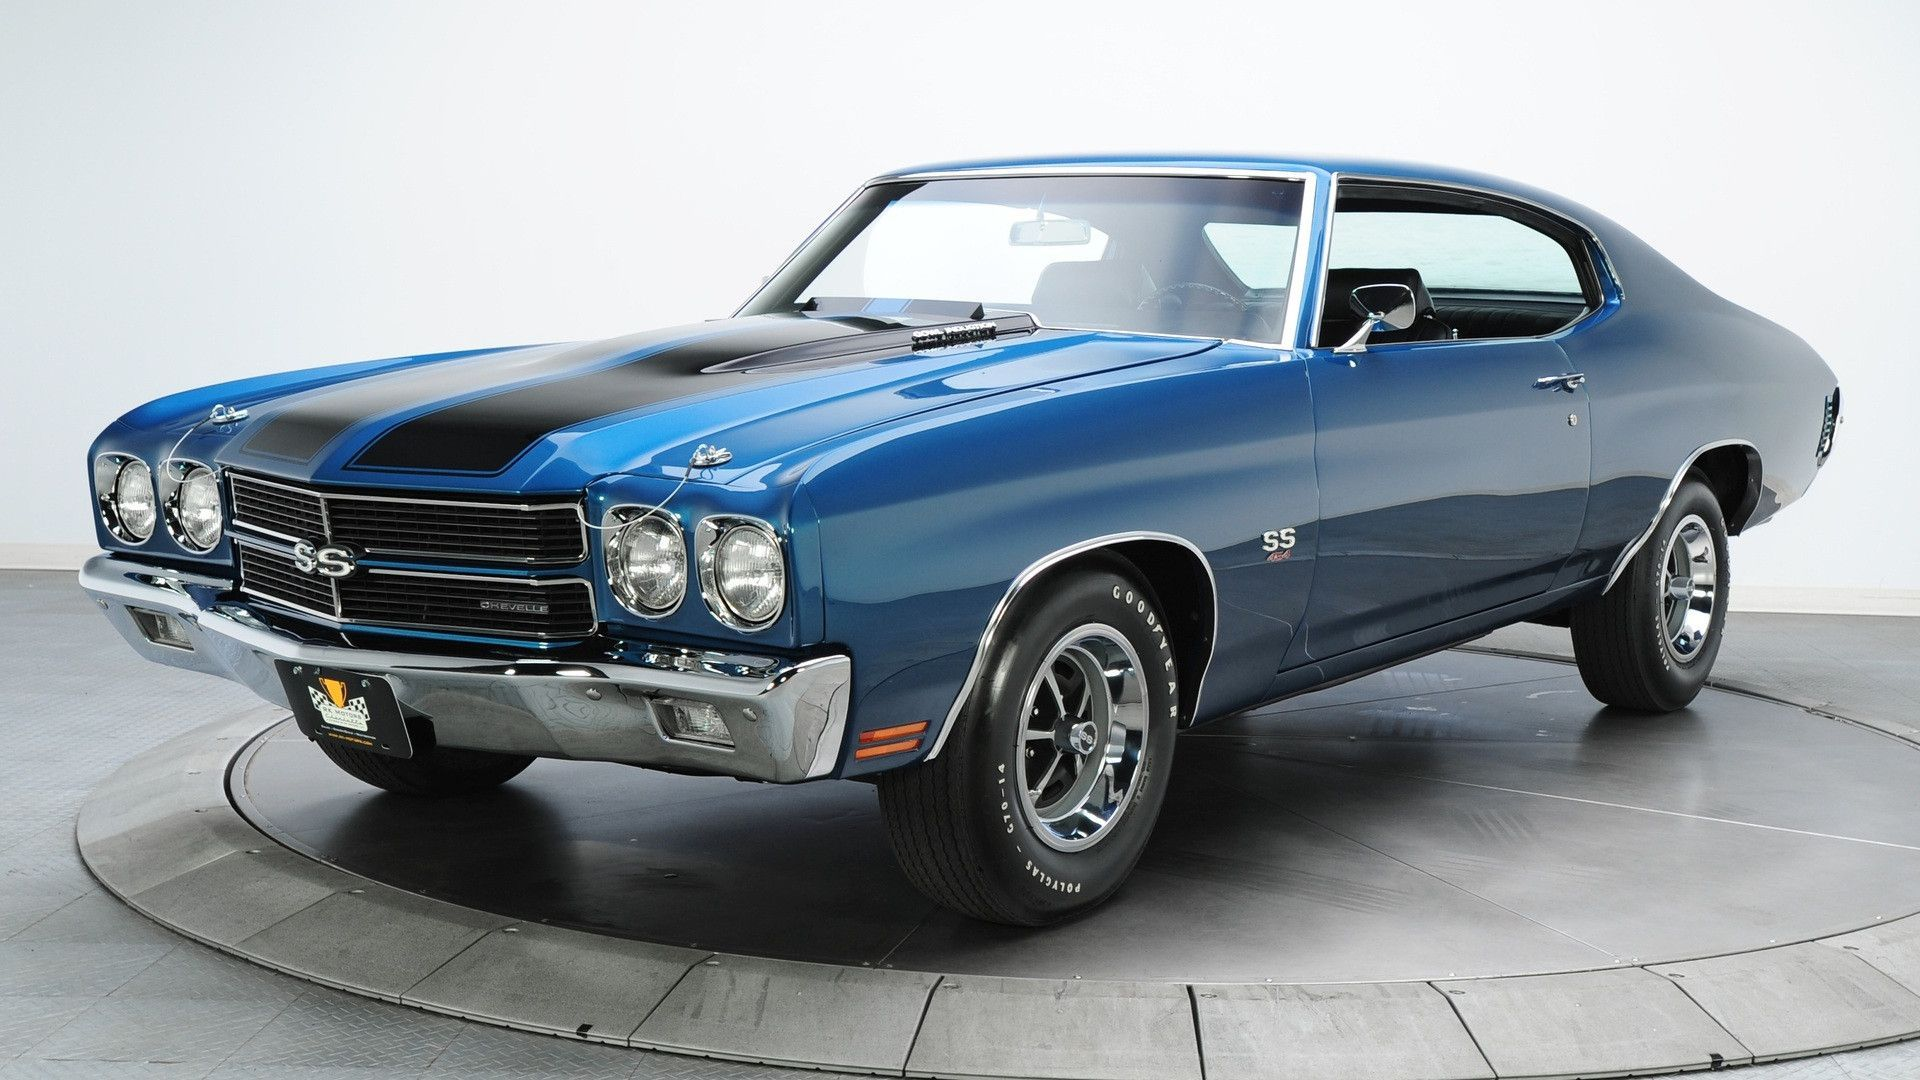 Top American Muscle Cars Of All Time The Old Man Club